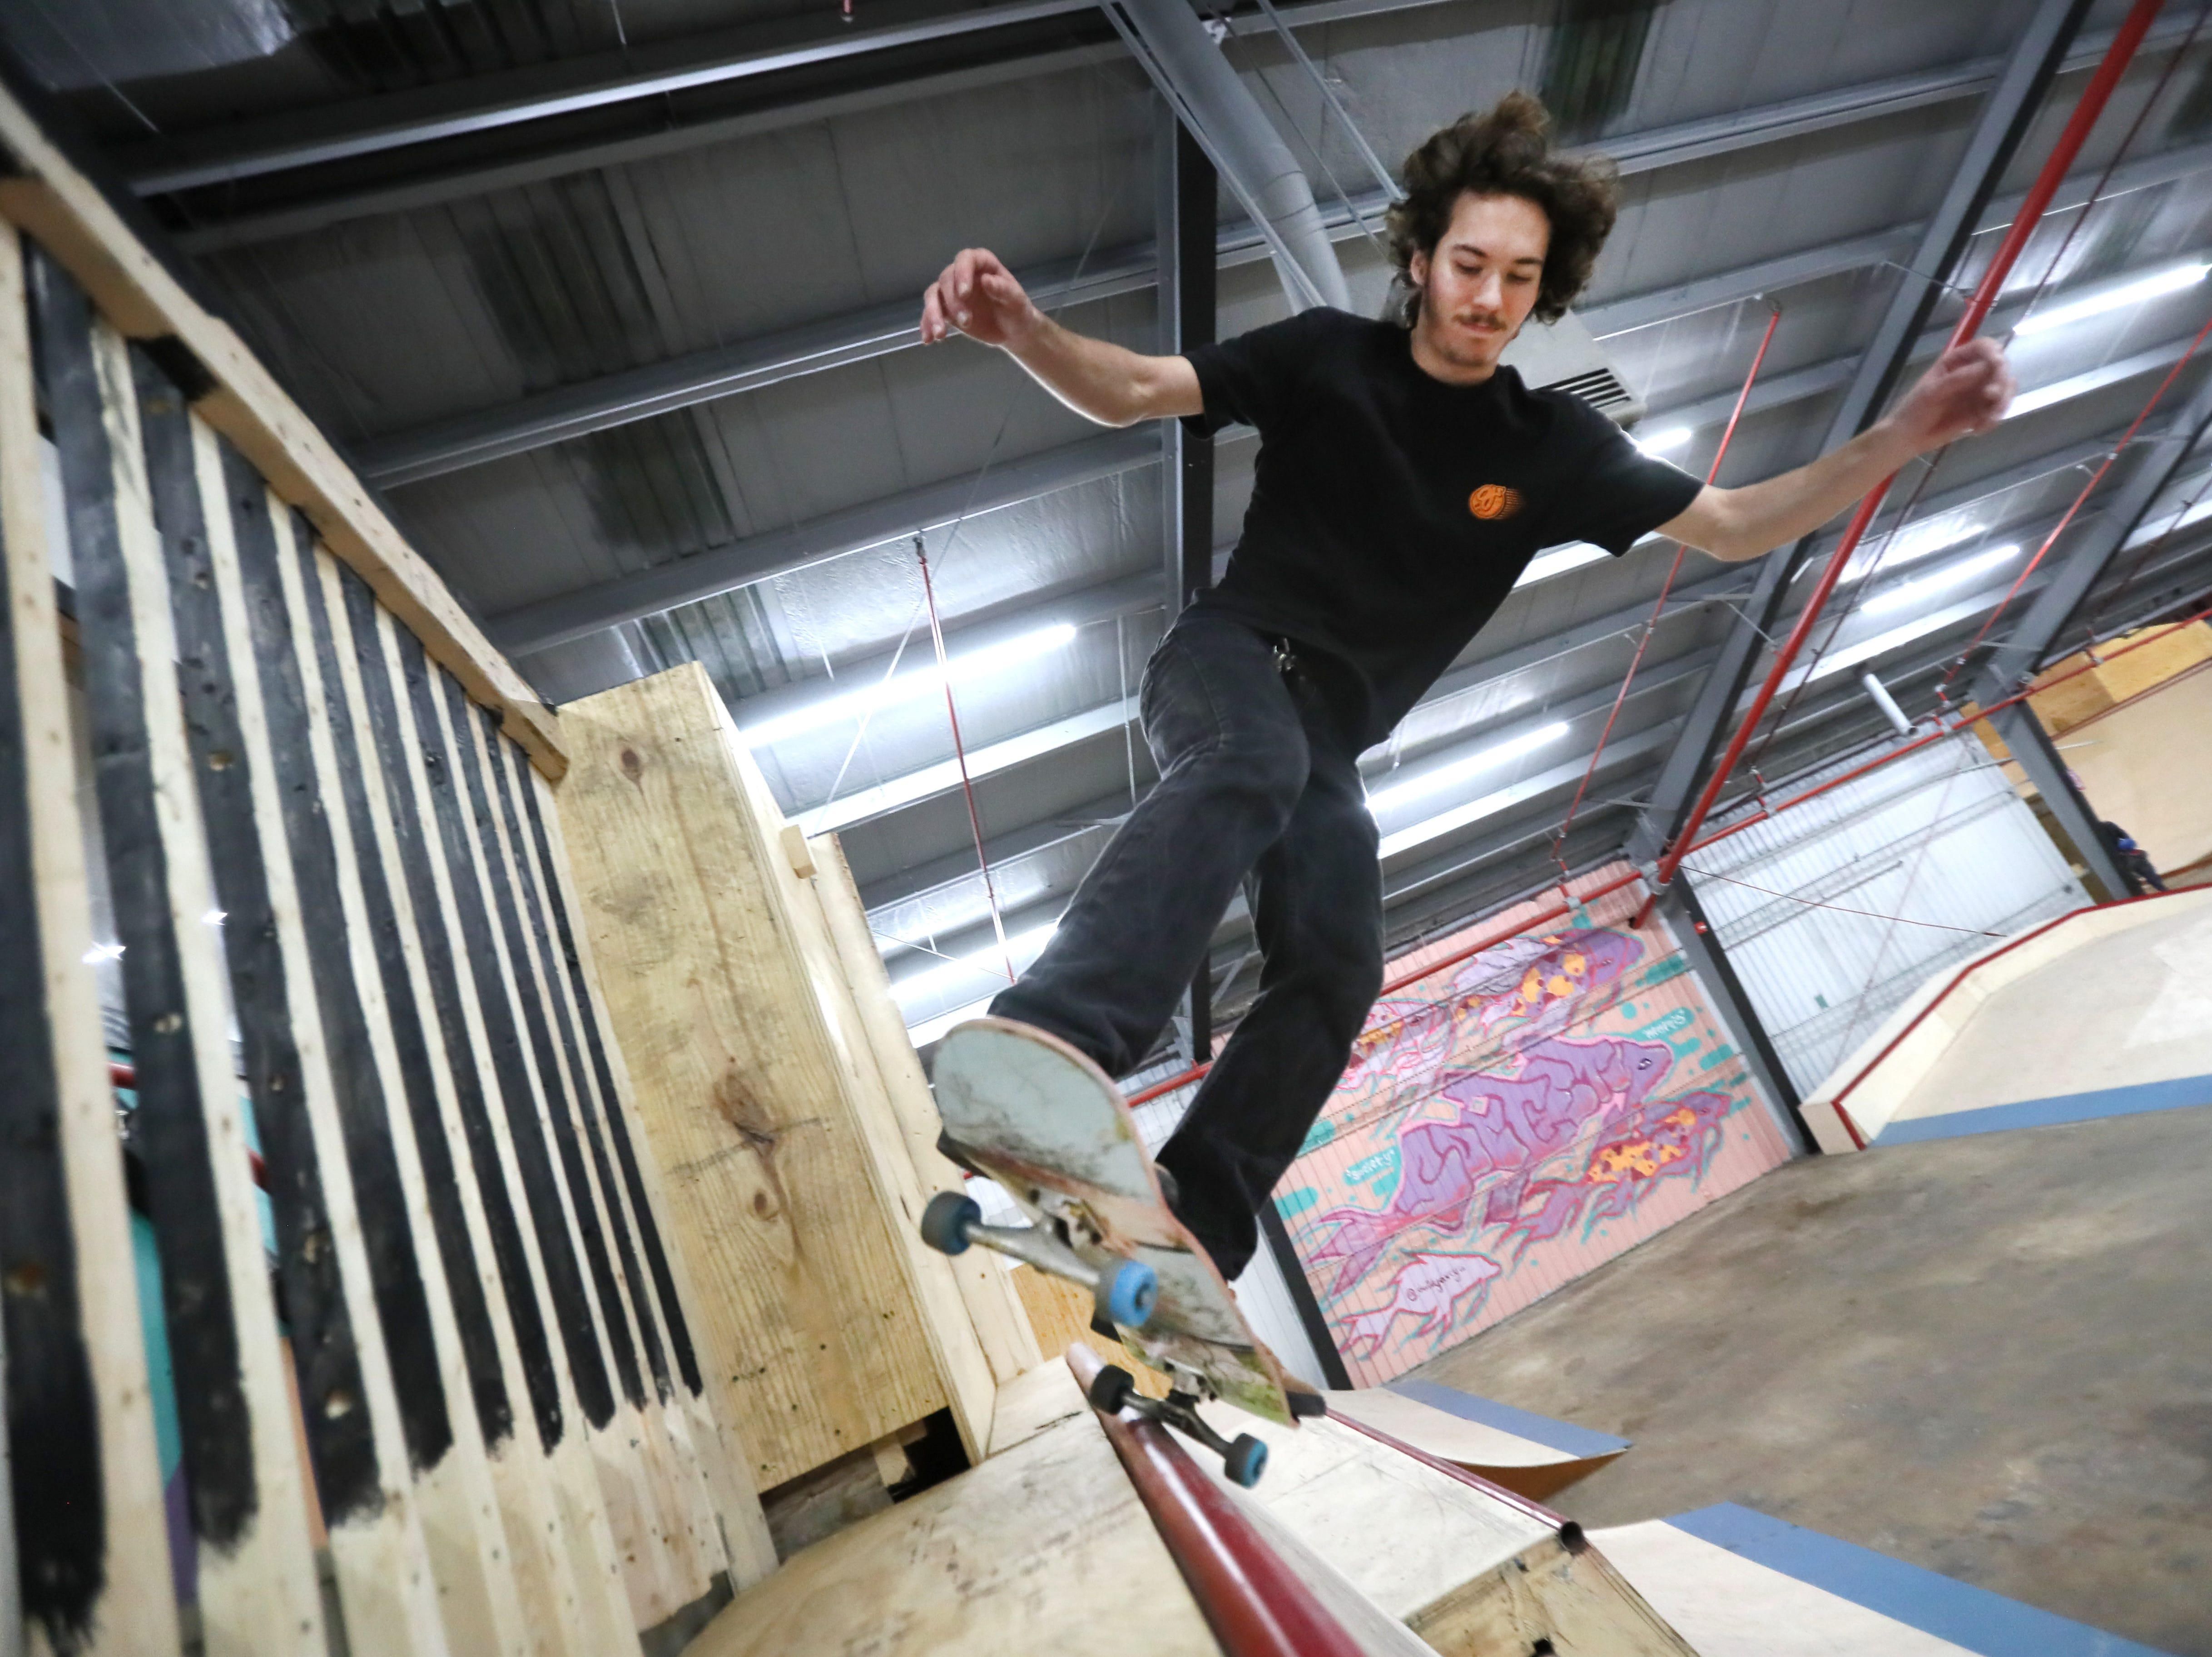 Jason weiner, 18, rides inside Society Skatepark, a joint venture with Contact Skateboard Shop in the Broad Avenue Arts District which held its soft opening on Thursday, Dec. 20, 2018.